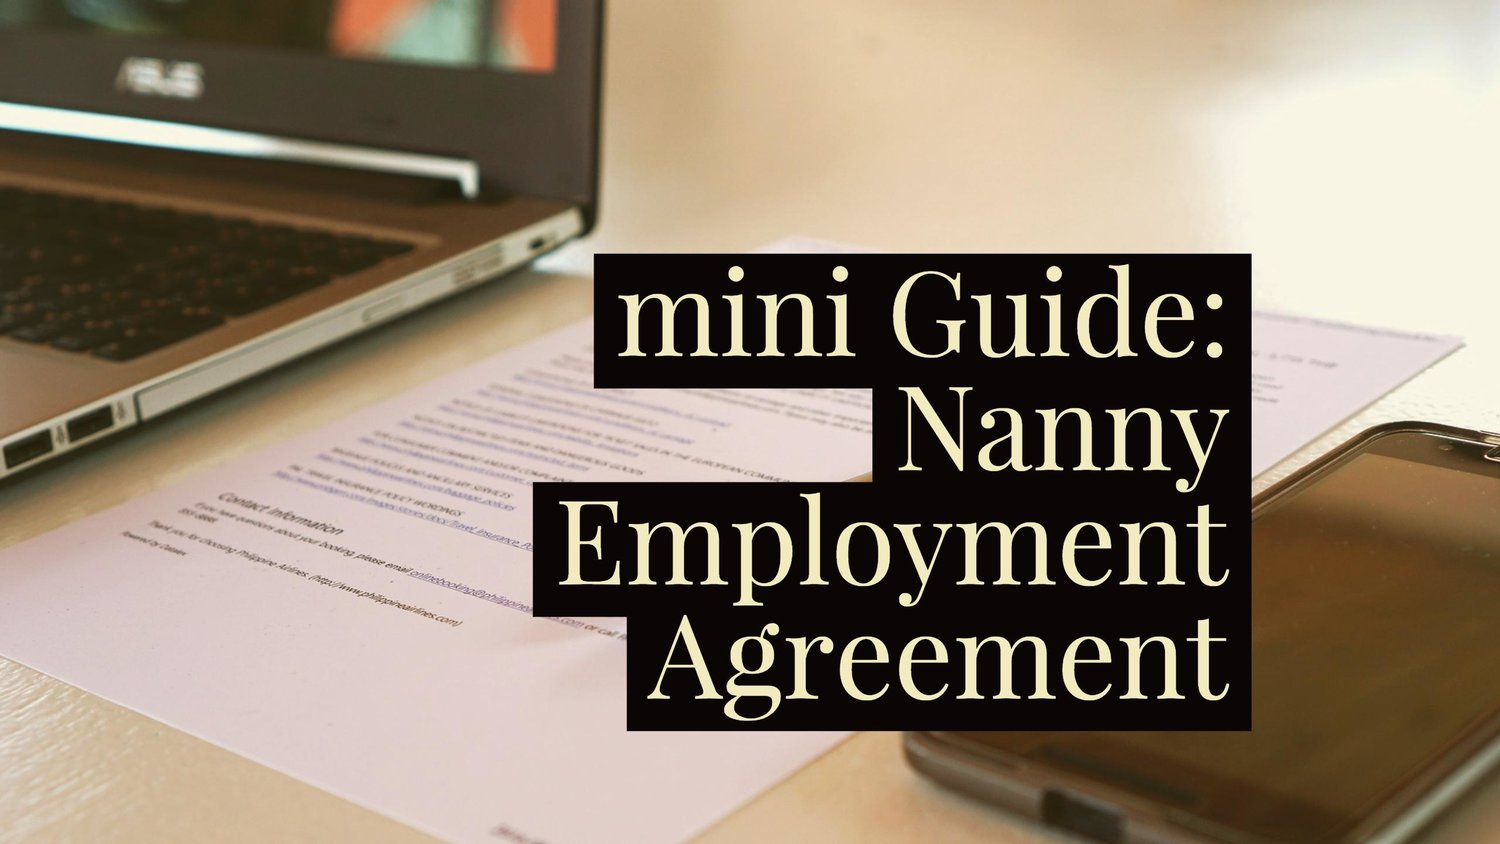 What should go into an employment agreement contract?